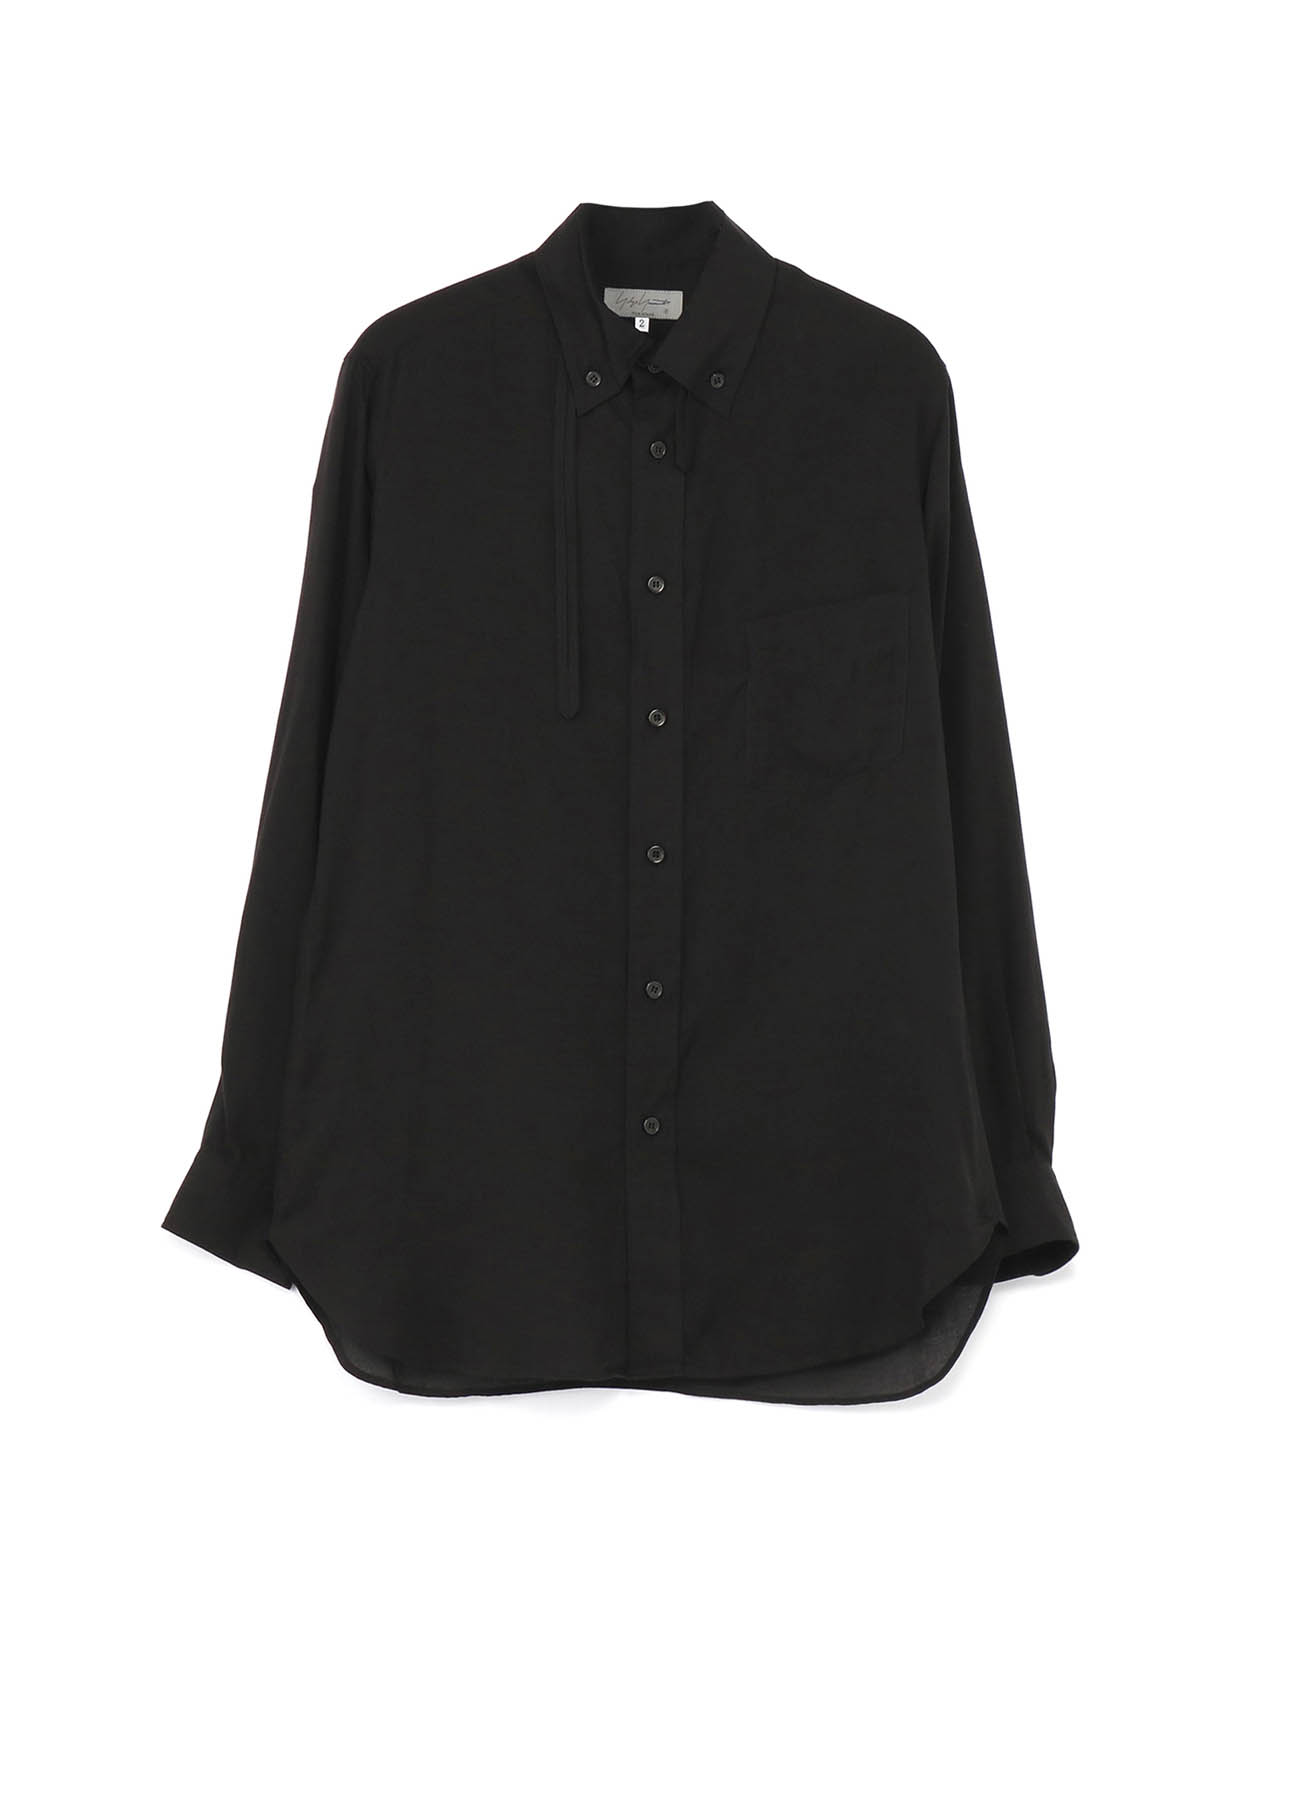 CELLULOSE LAWN STAND COLLAR LOOP BLOUSE